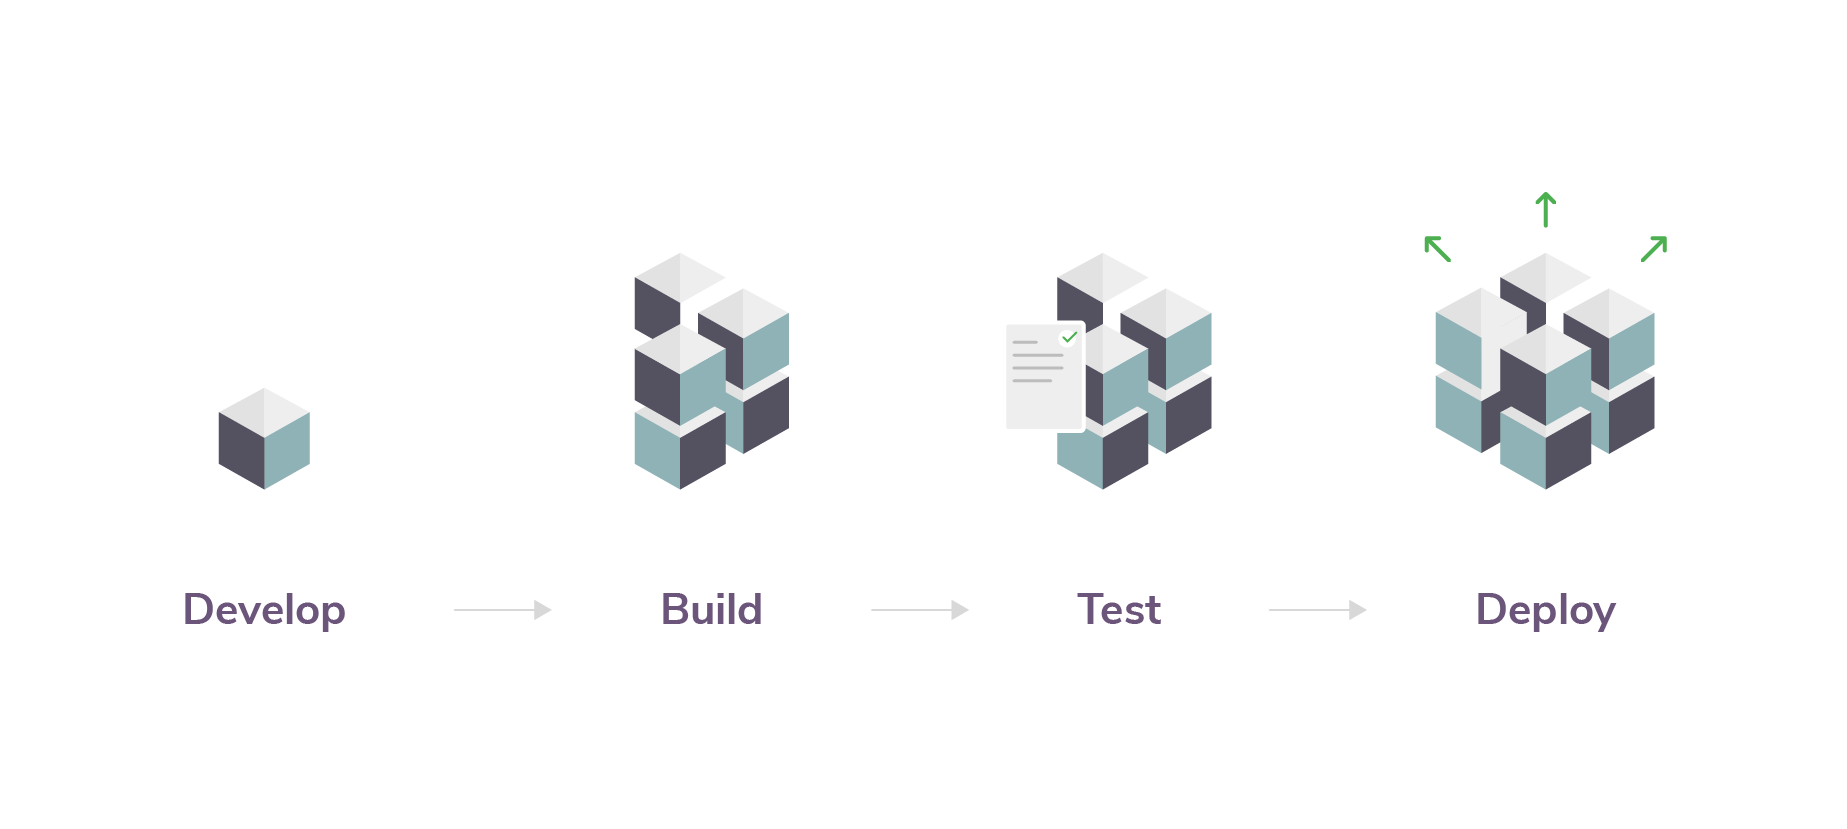 Software Development Workflow: Develop > Build > Test > Deploy